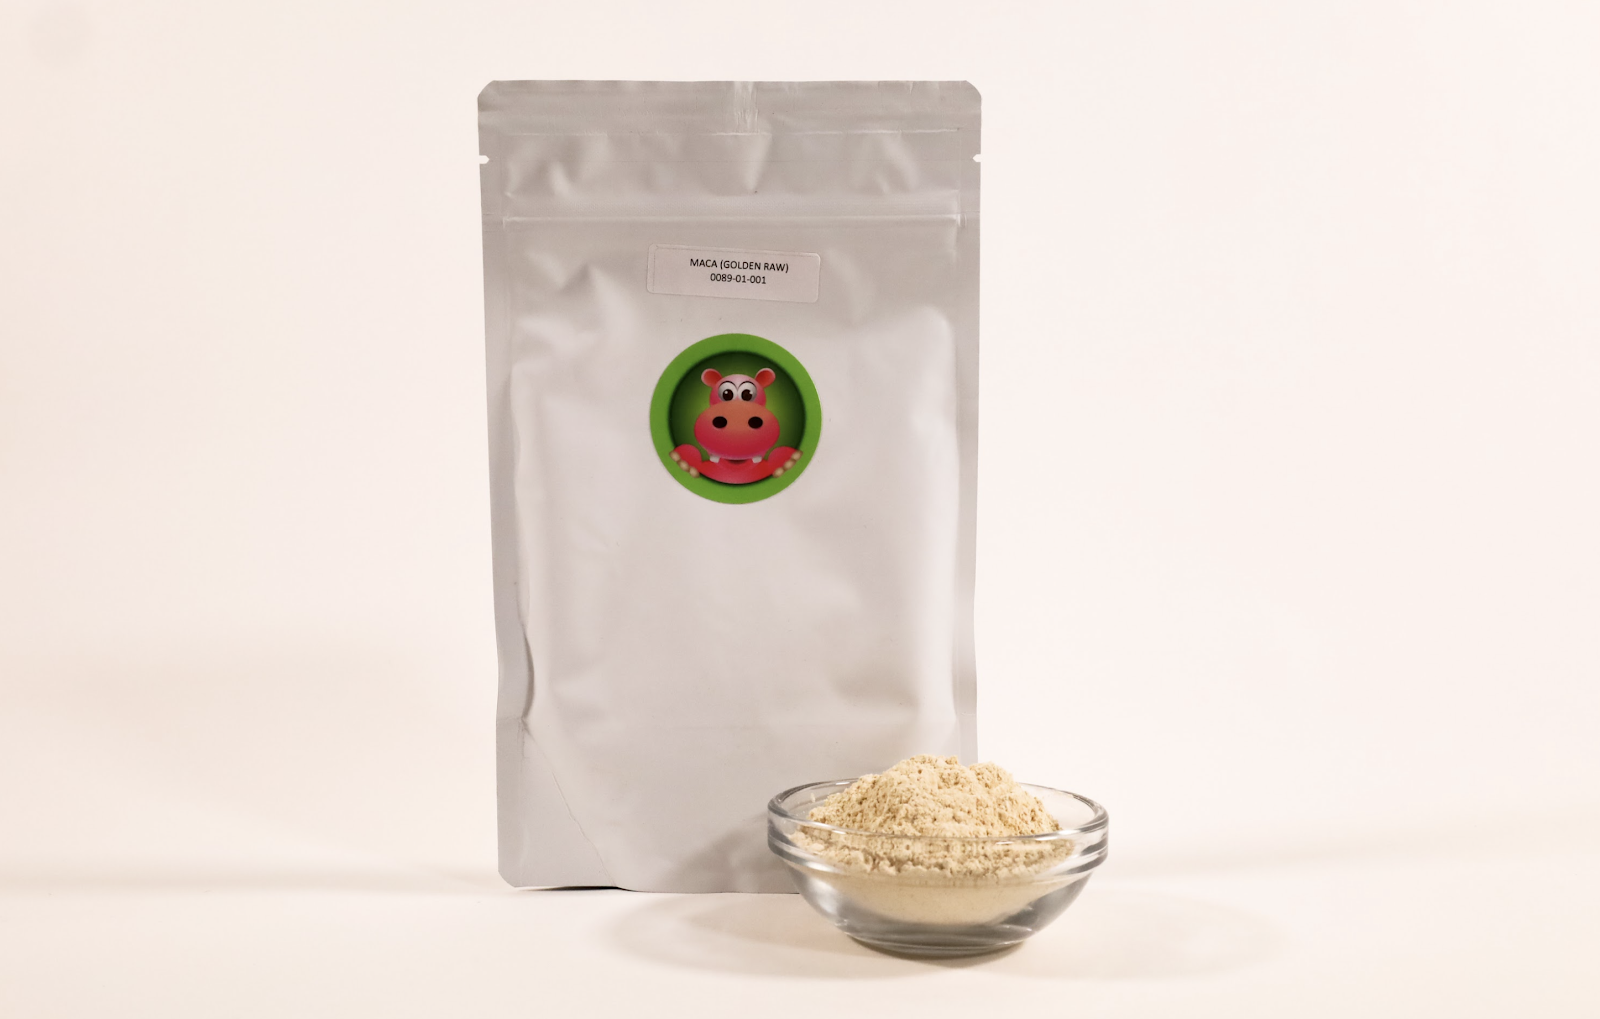 Maca Root Powder - What are the Benefits?